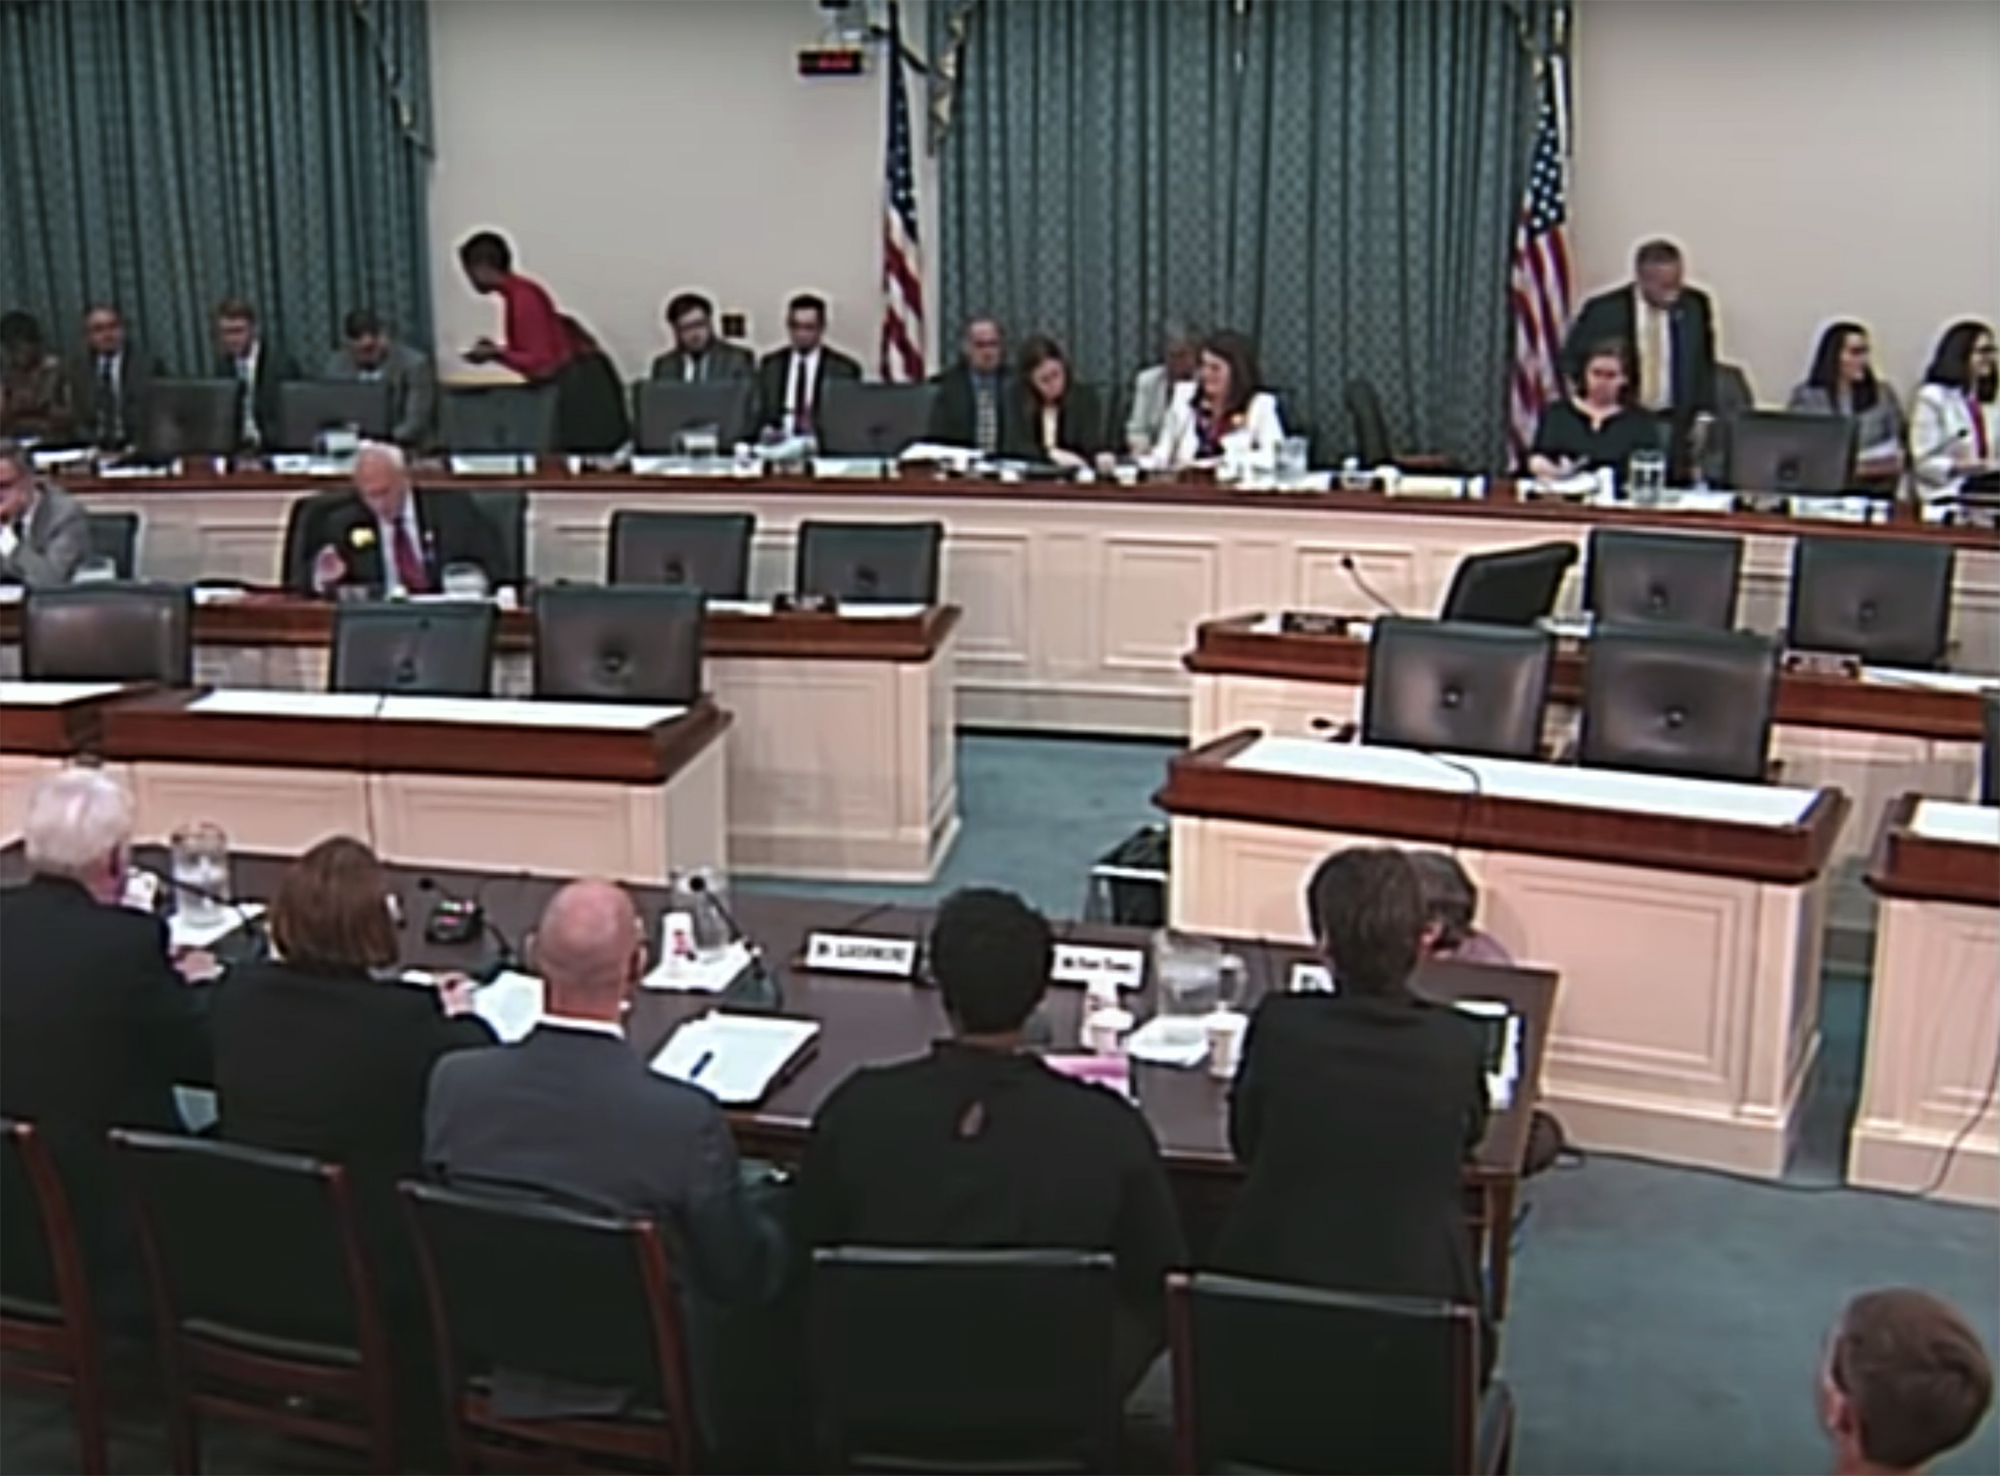 This is a picture of the Congressional hearing held May 21.